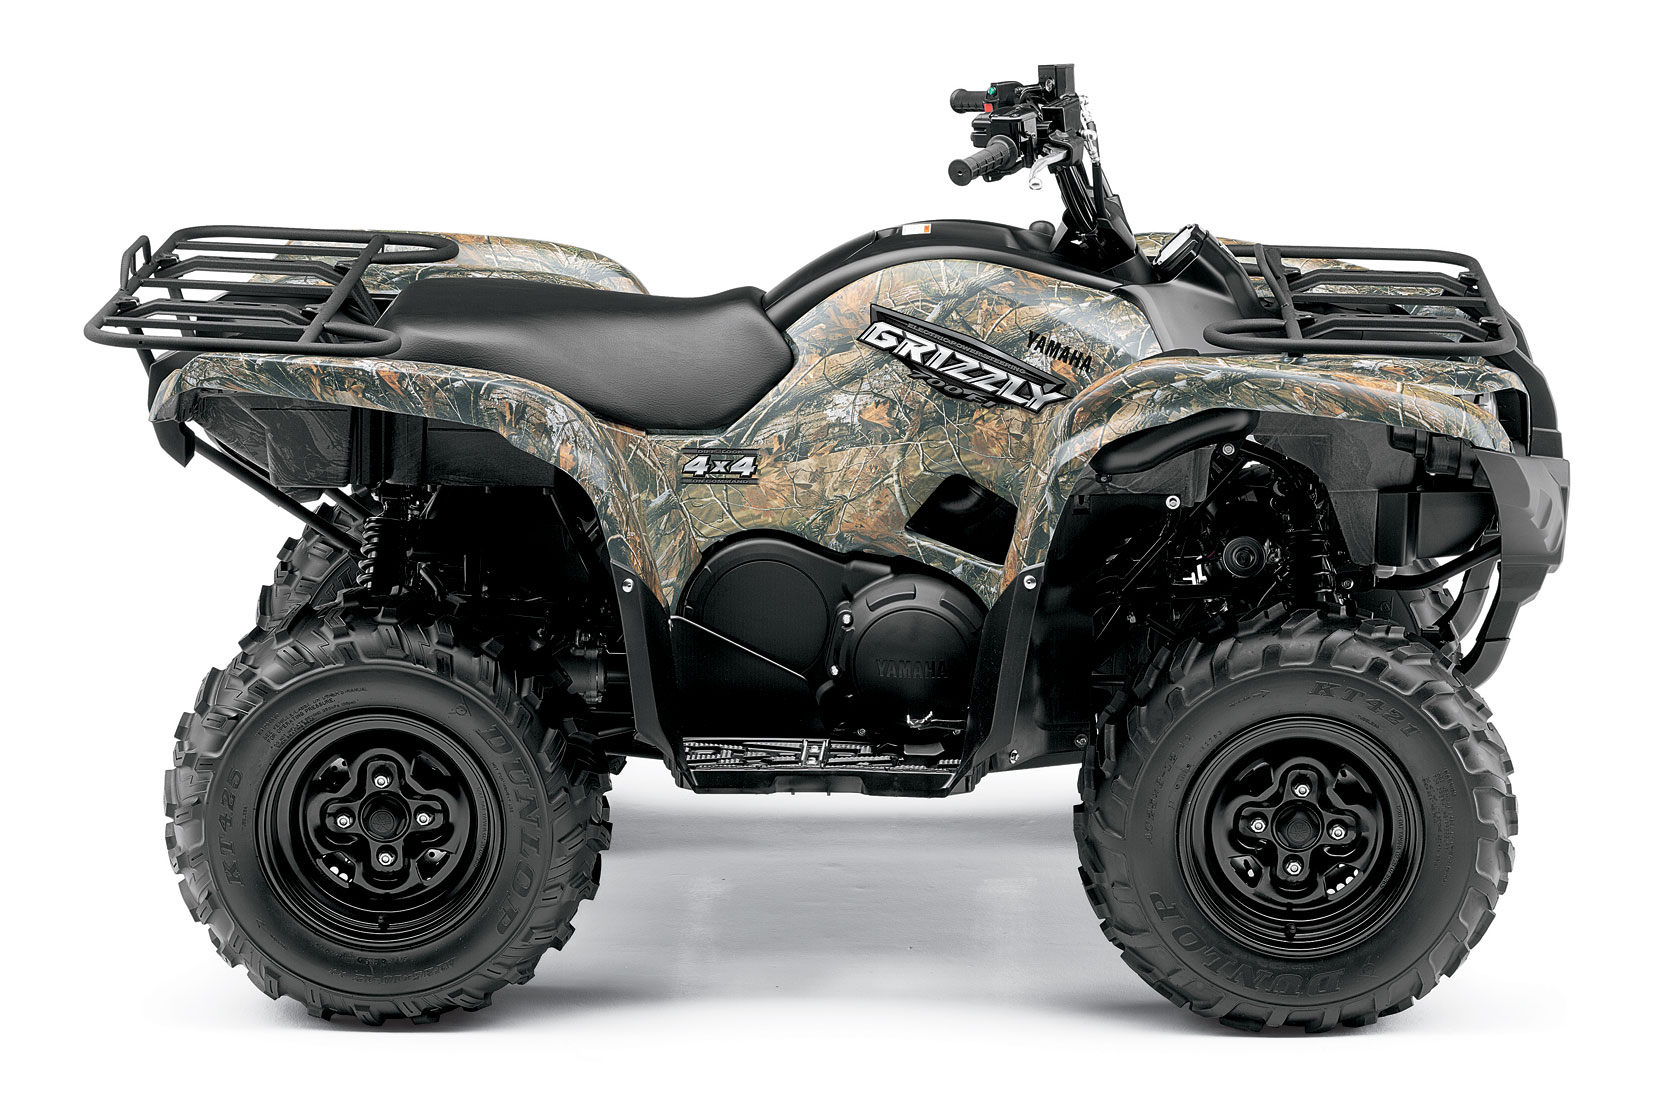 Yamaha grizzly 700 fi eps ducks unlimited specs 2008 for 2018 yamaha grizzly 700 specs